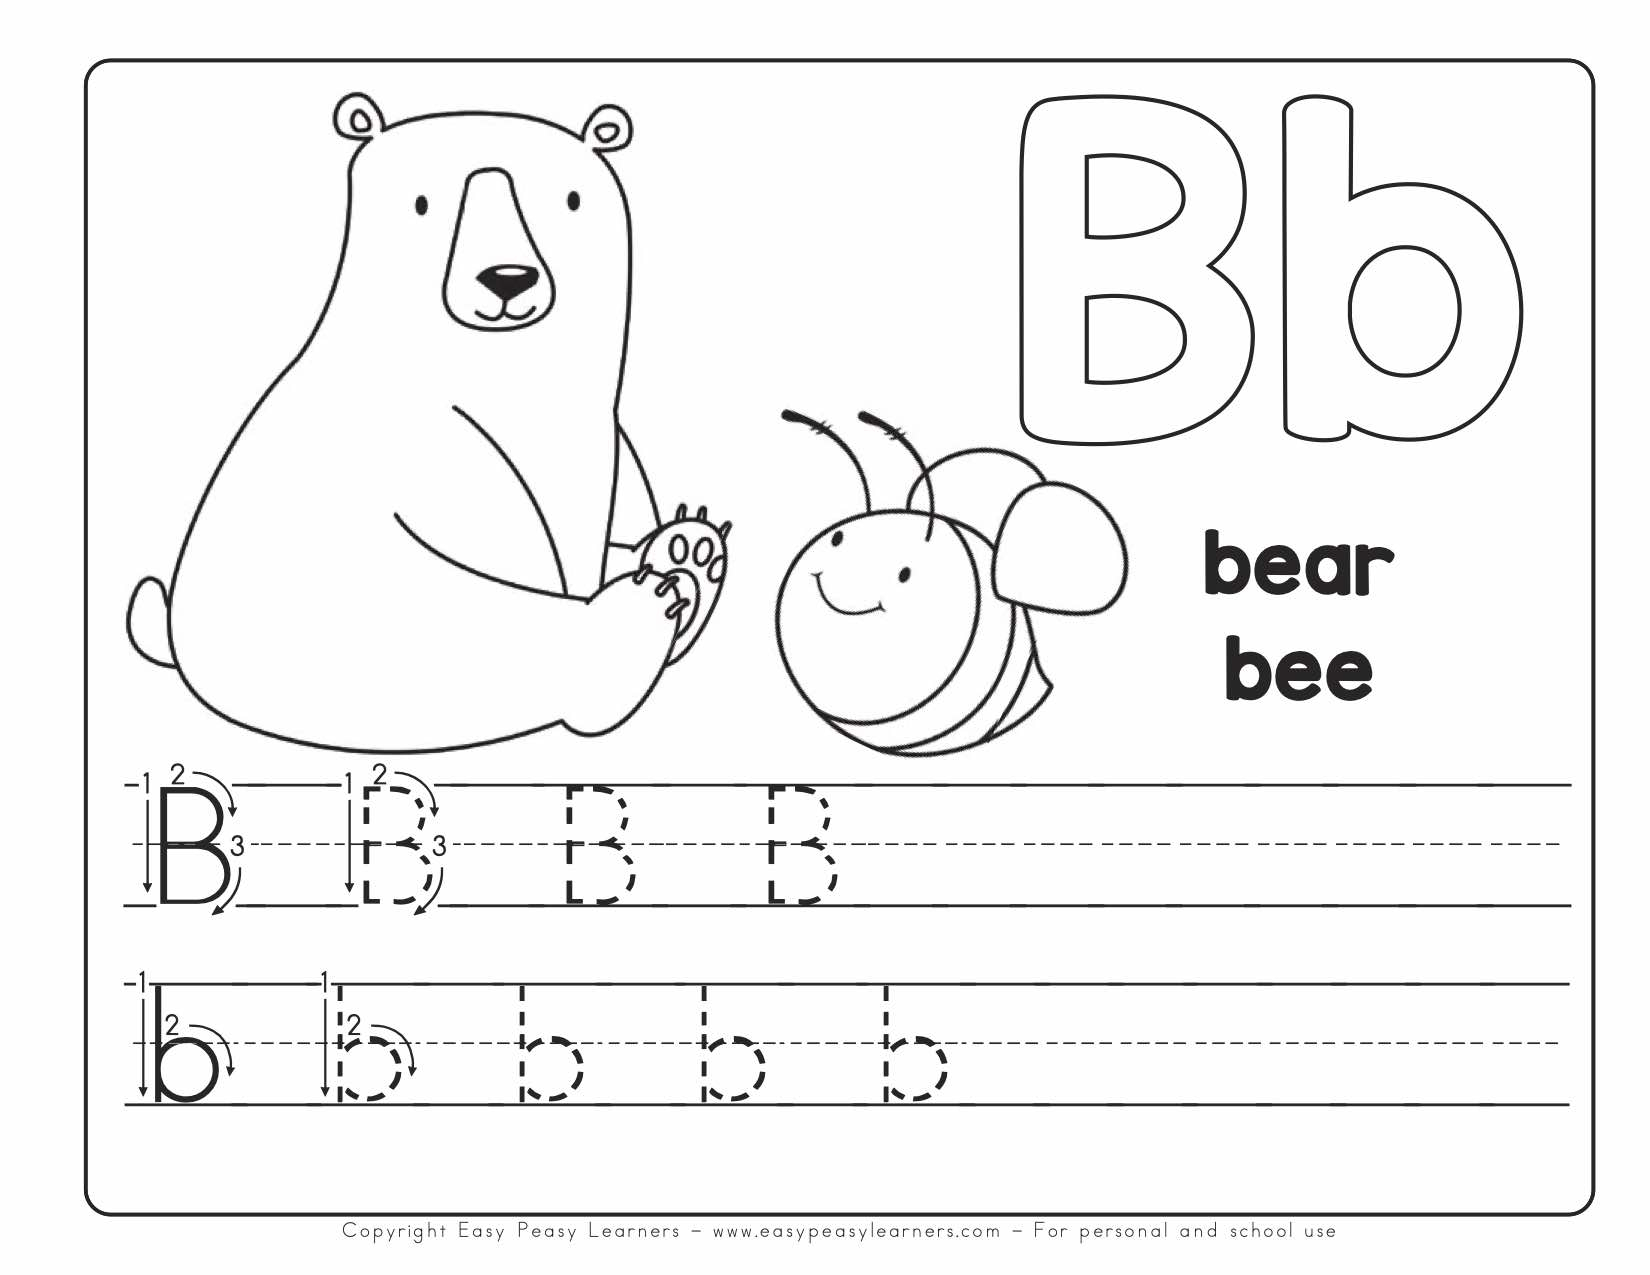 Alphabet Worksheets Kindergarten Coloring Pages – Nilekayakclub throughout Alphabet Worksheets Coloring